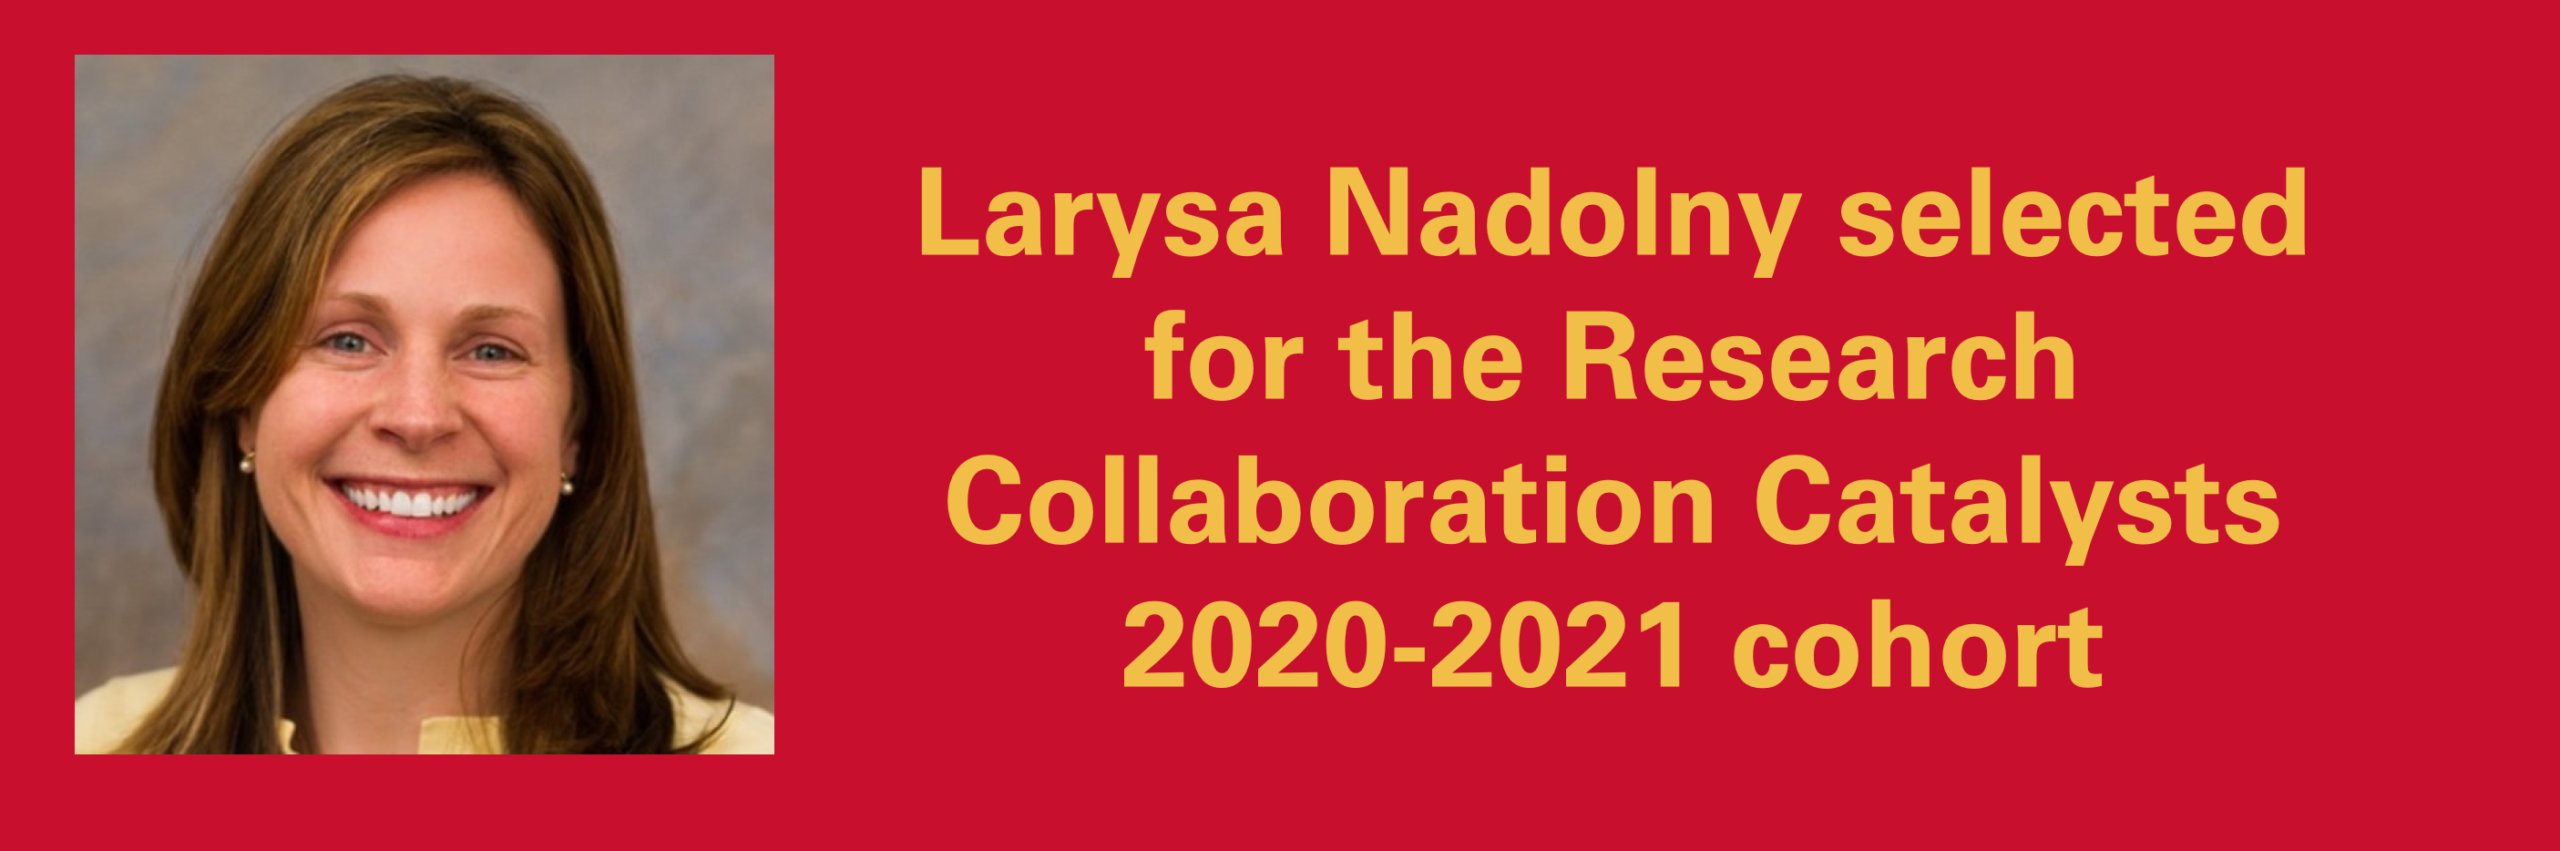 Larysa Nadolny selected for the Research Collaboration Catalysts 2020-2021 cohort